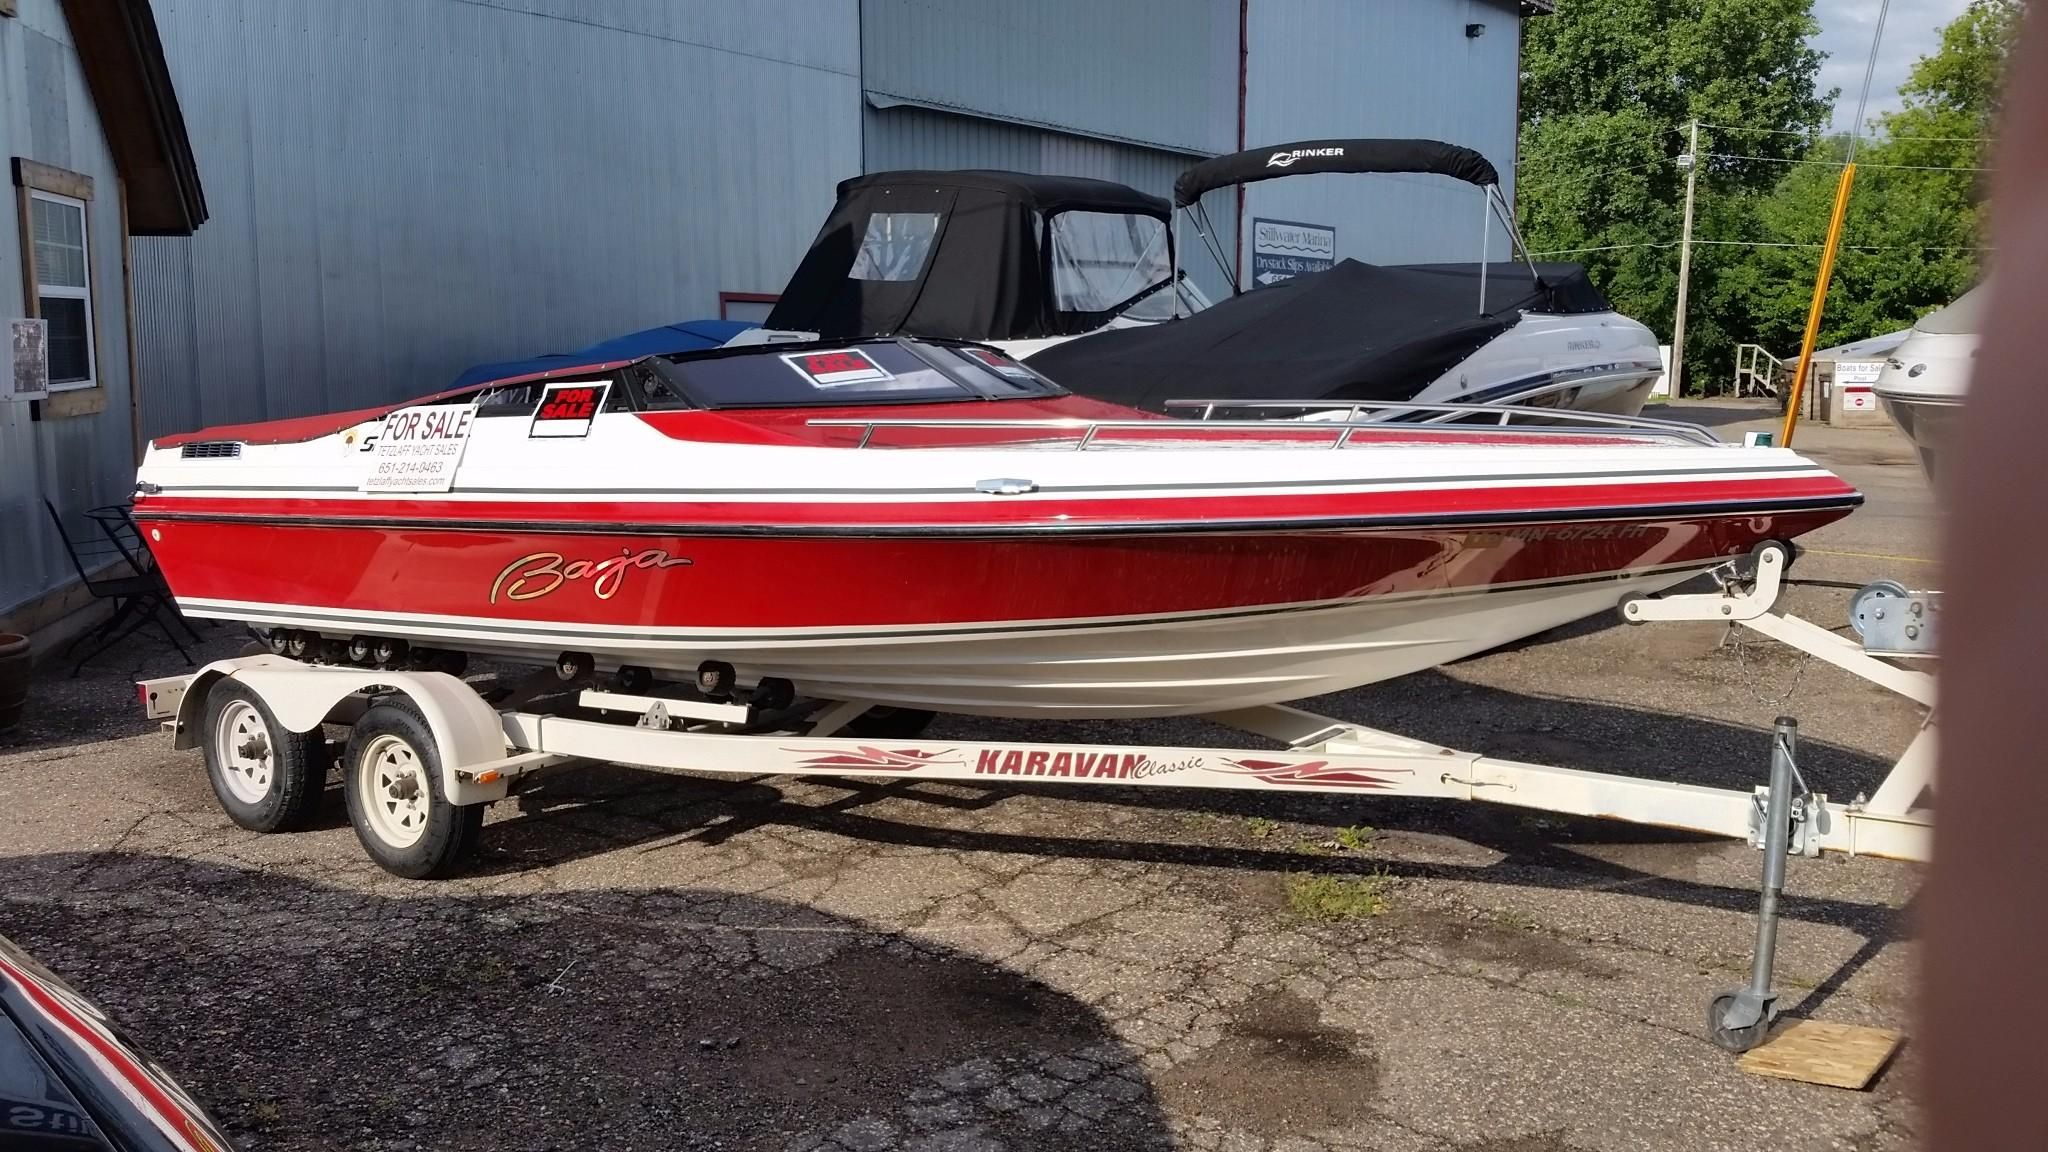 1988 baja sport 196 power boat for sale for Yamaha of stillwater